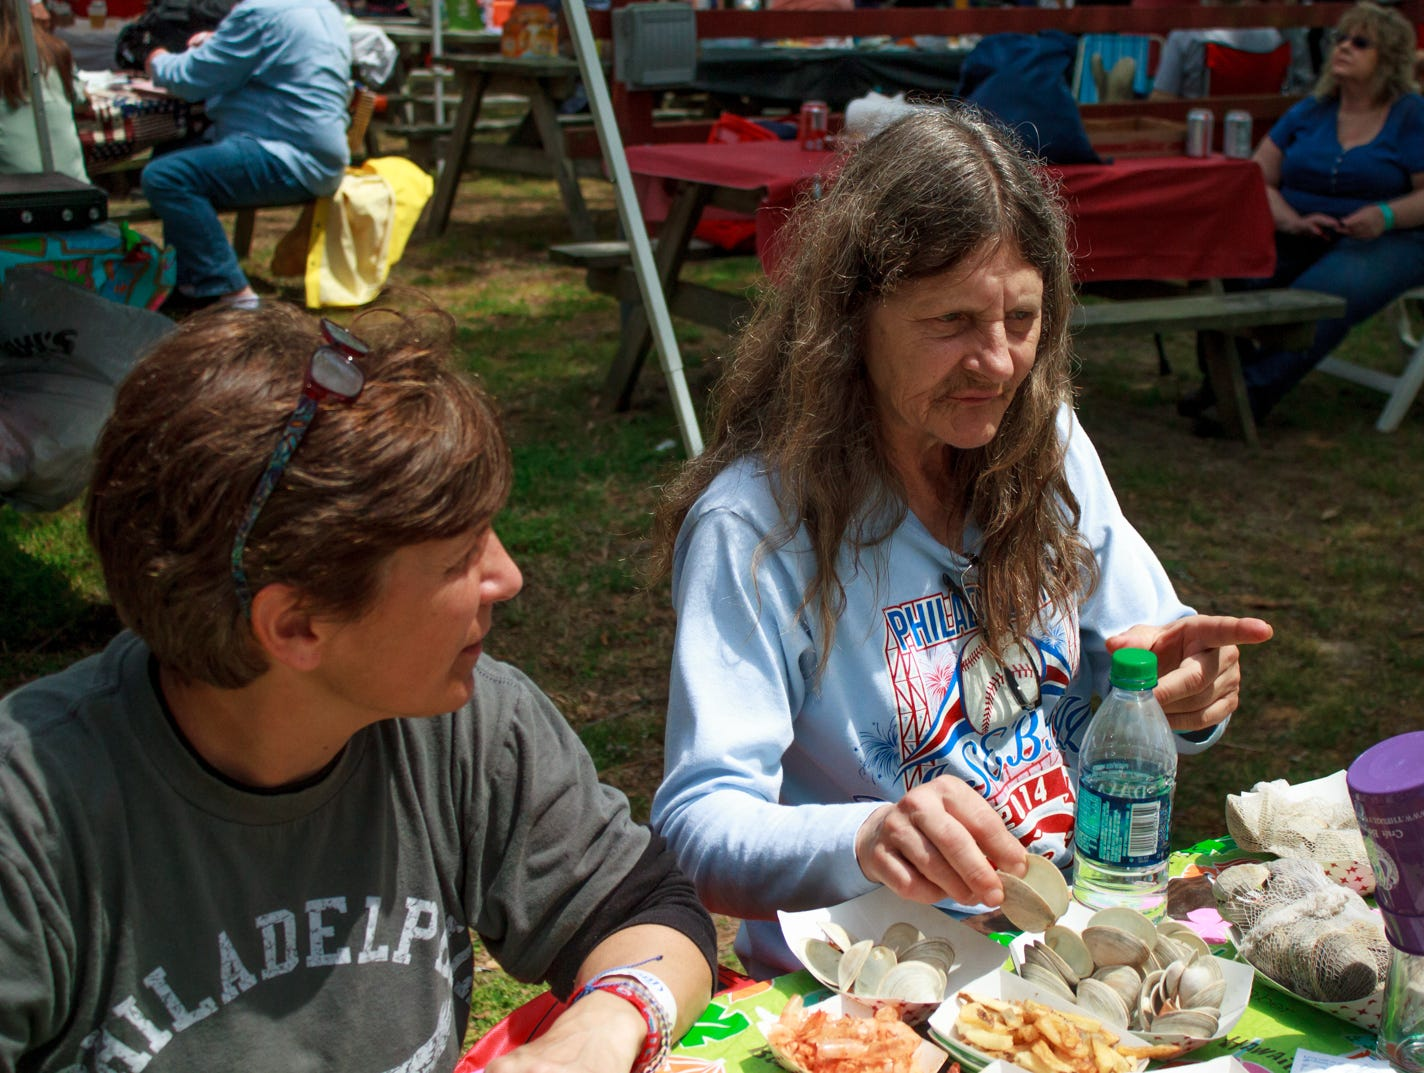 Sisters Carolyn and Helen Czarnecki of Conshohocken, Pa. discuss clams vs. oysters with friends on Saturday, May 4, 2019.